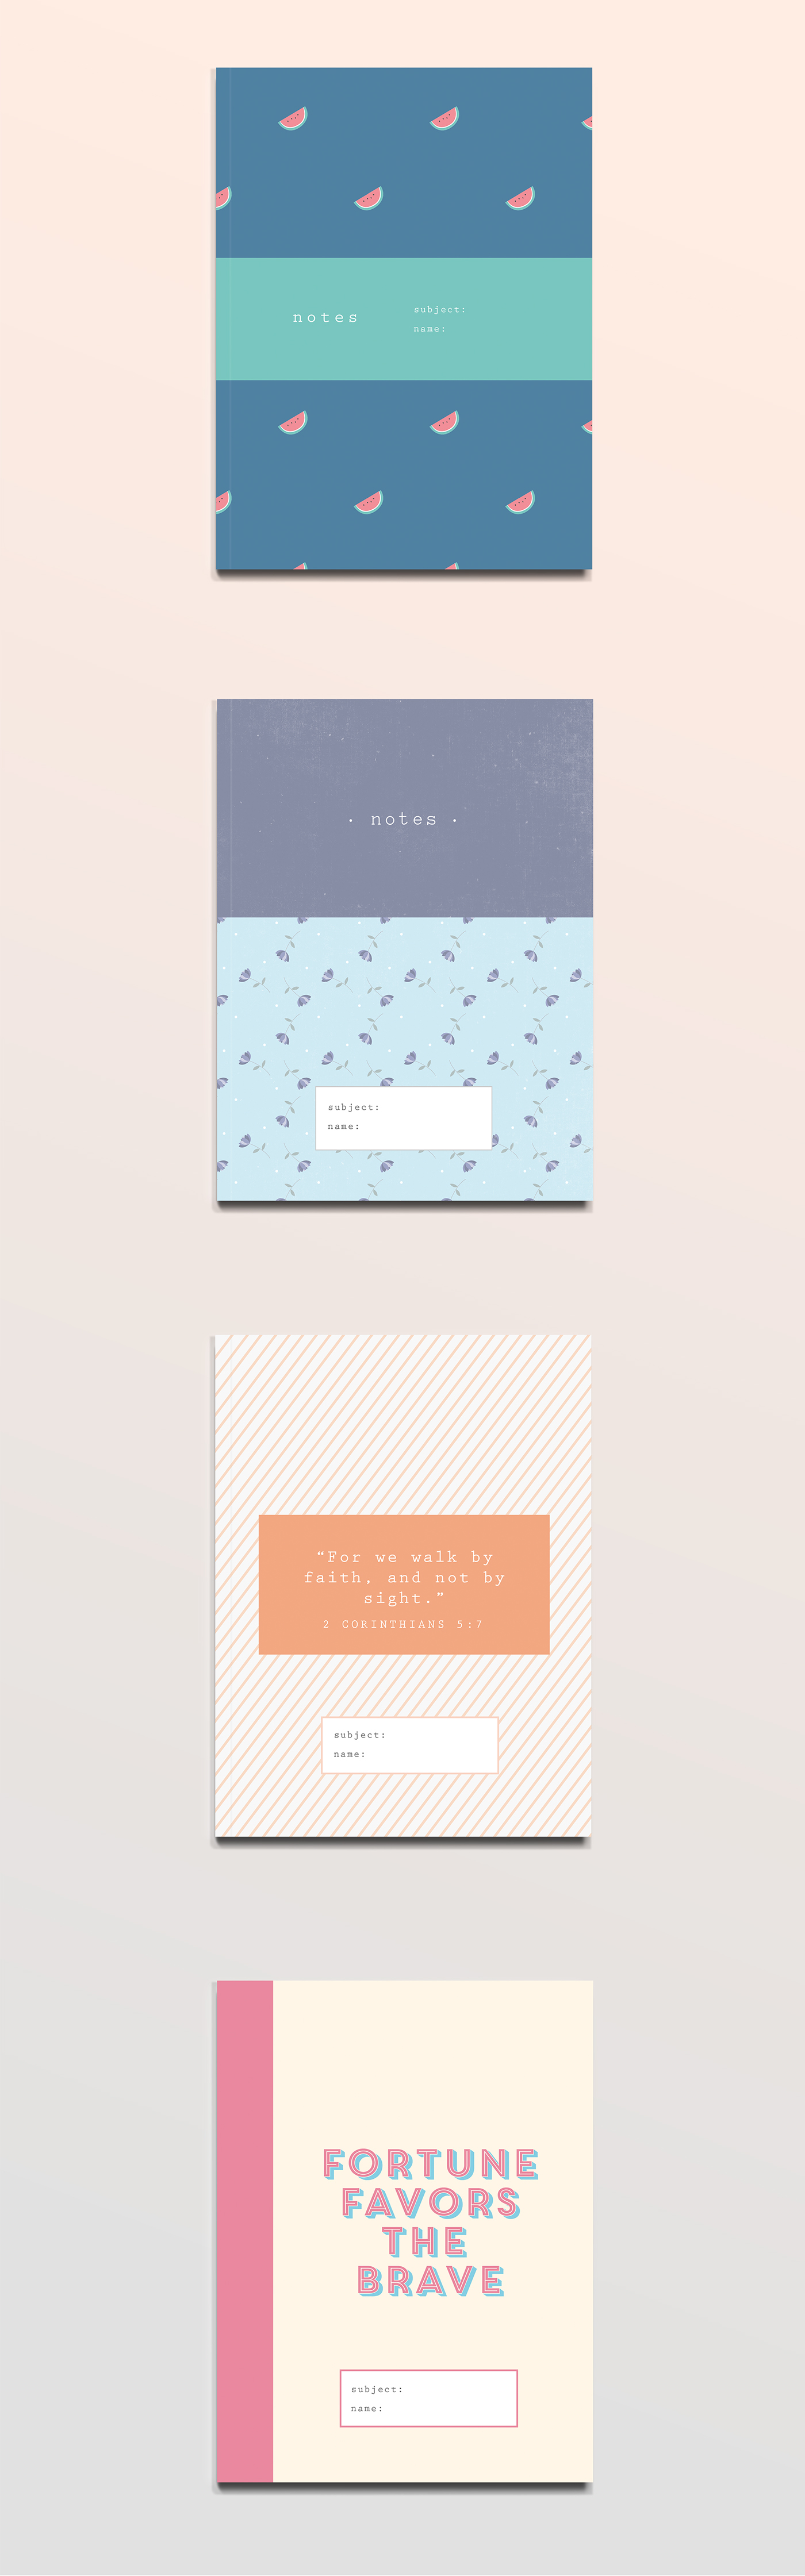 Notebook Cover Designs